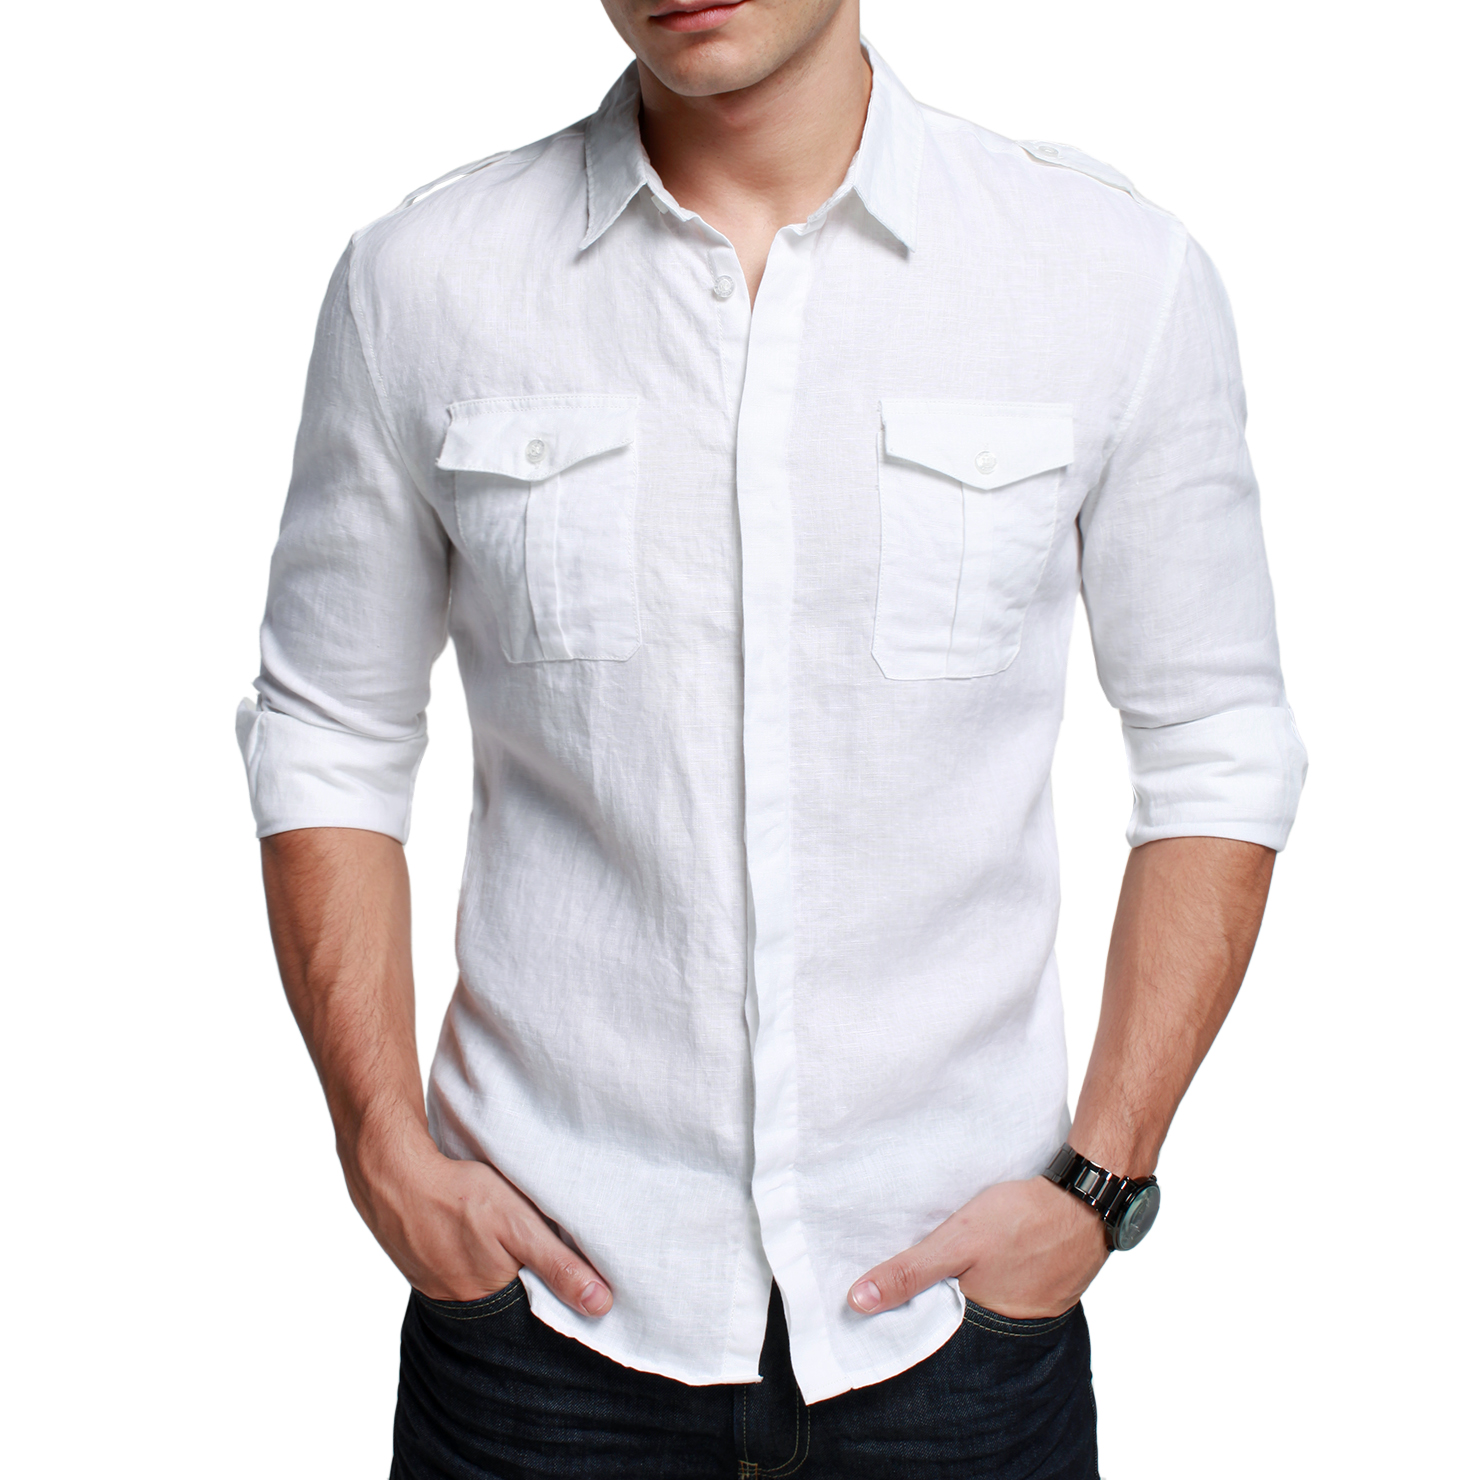 White men shirt is shirt for Mens long sleeve white t shirt